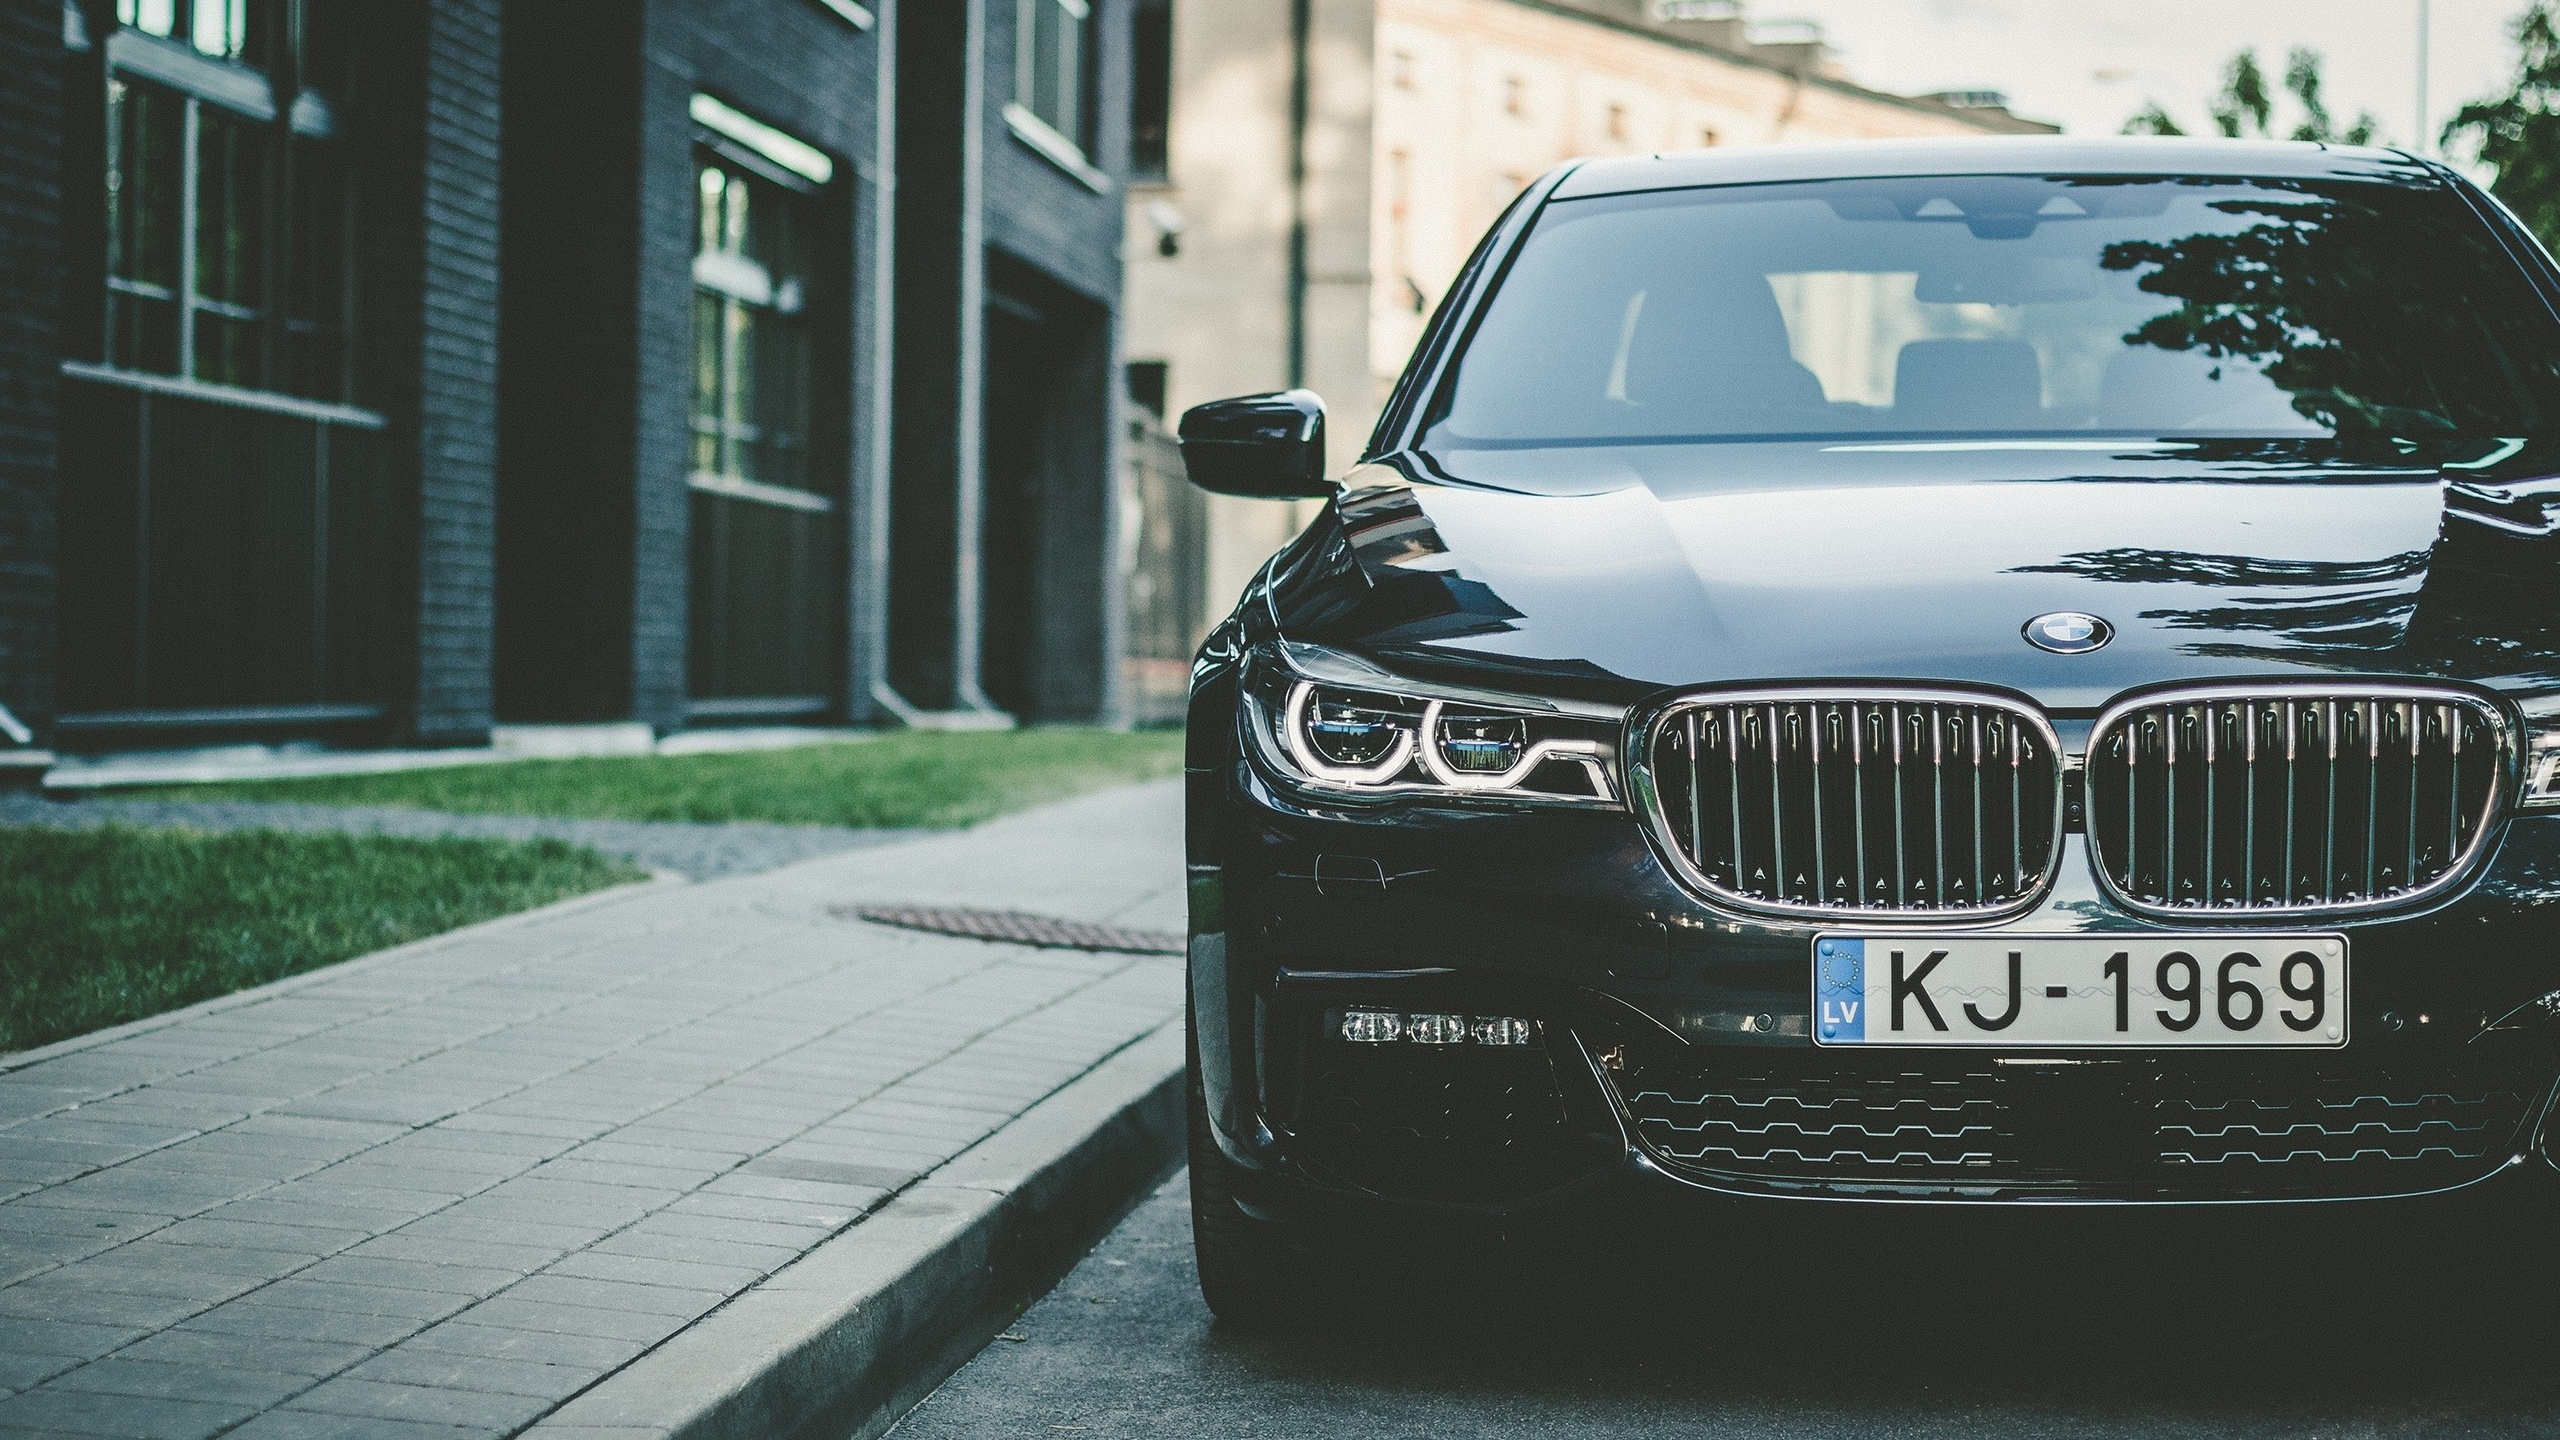 bmw, 7 series, улица, дома